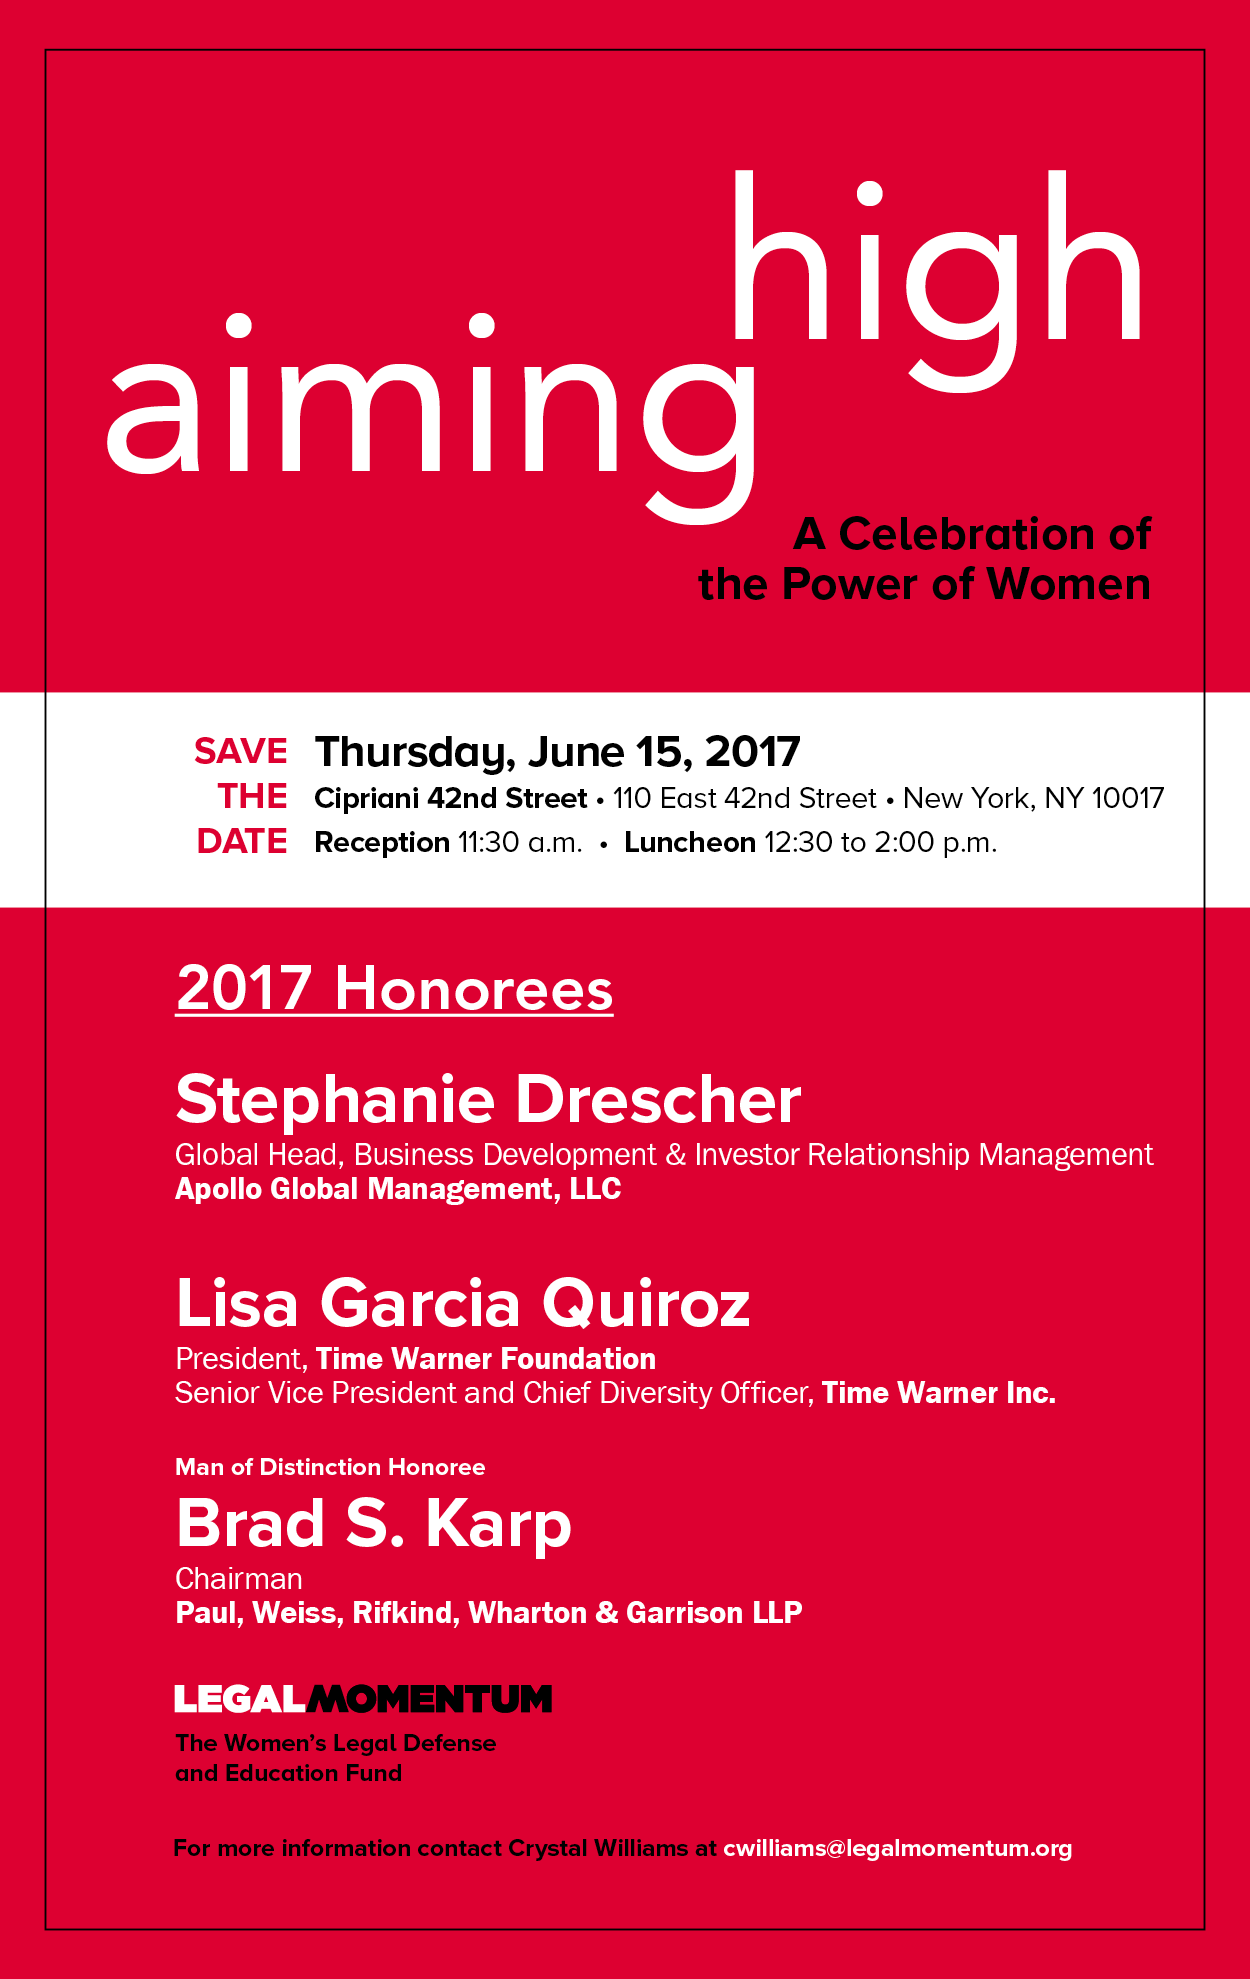 Aiming High 2017 graphic with honorees